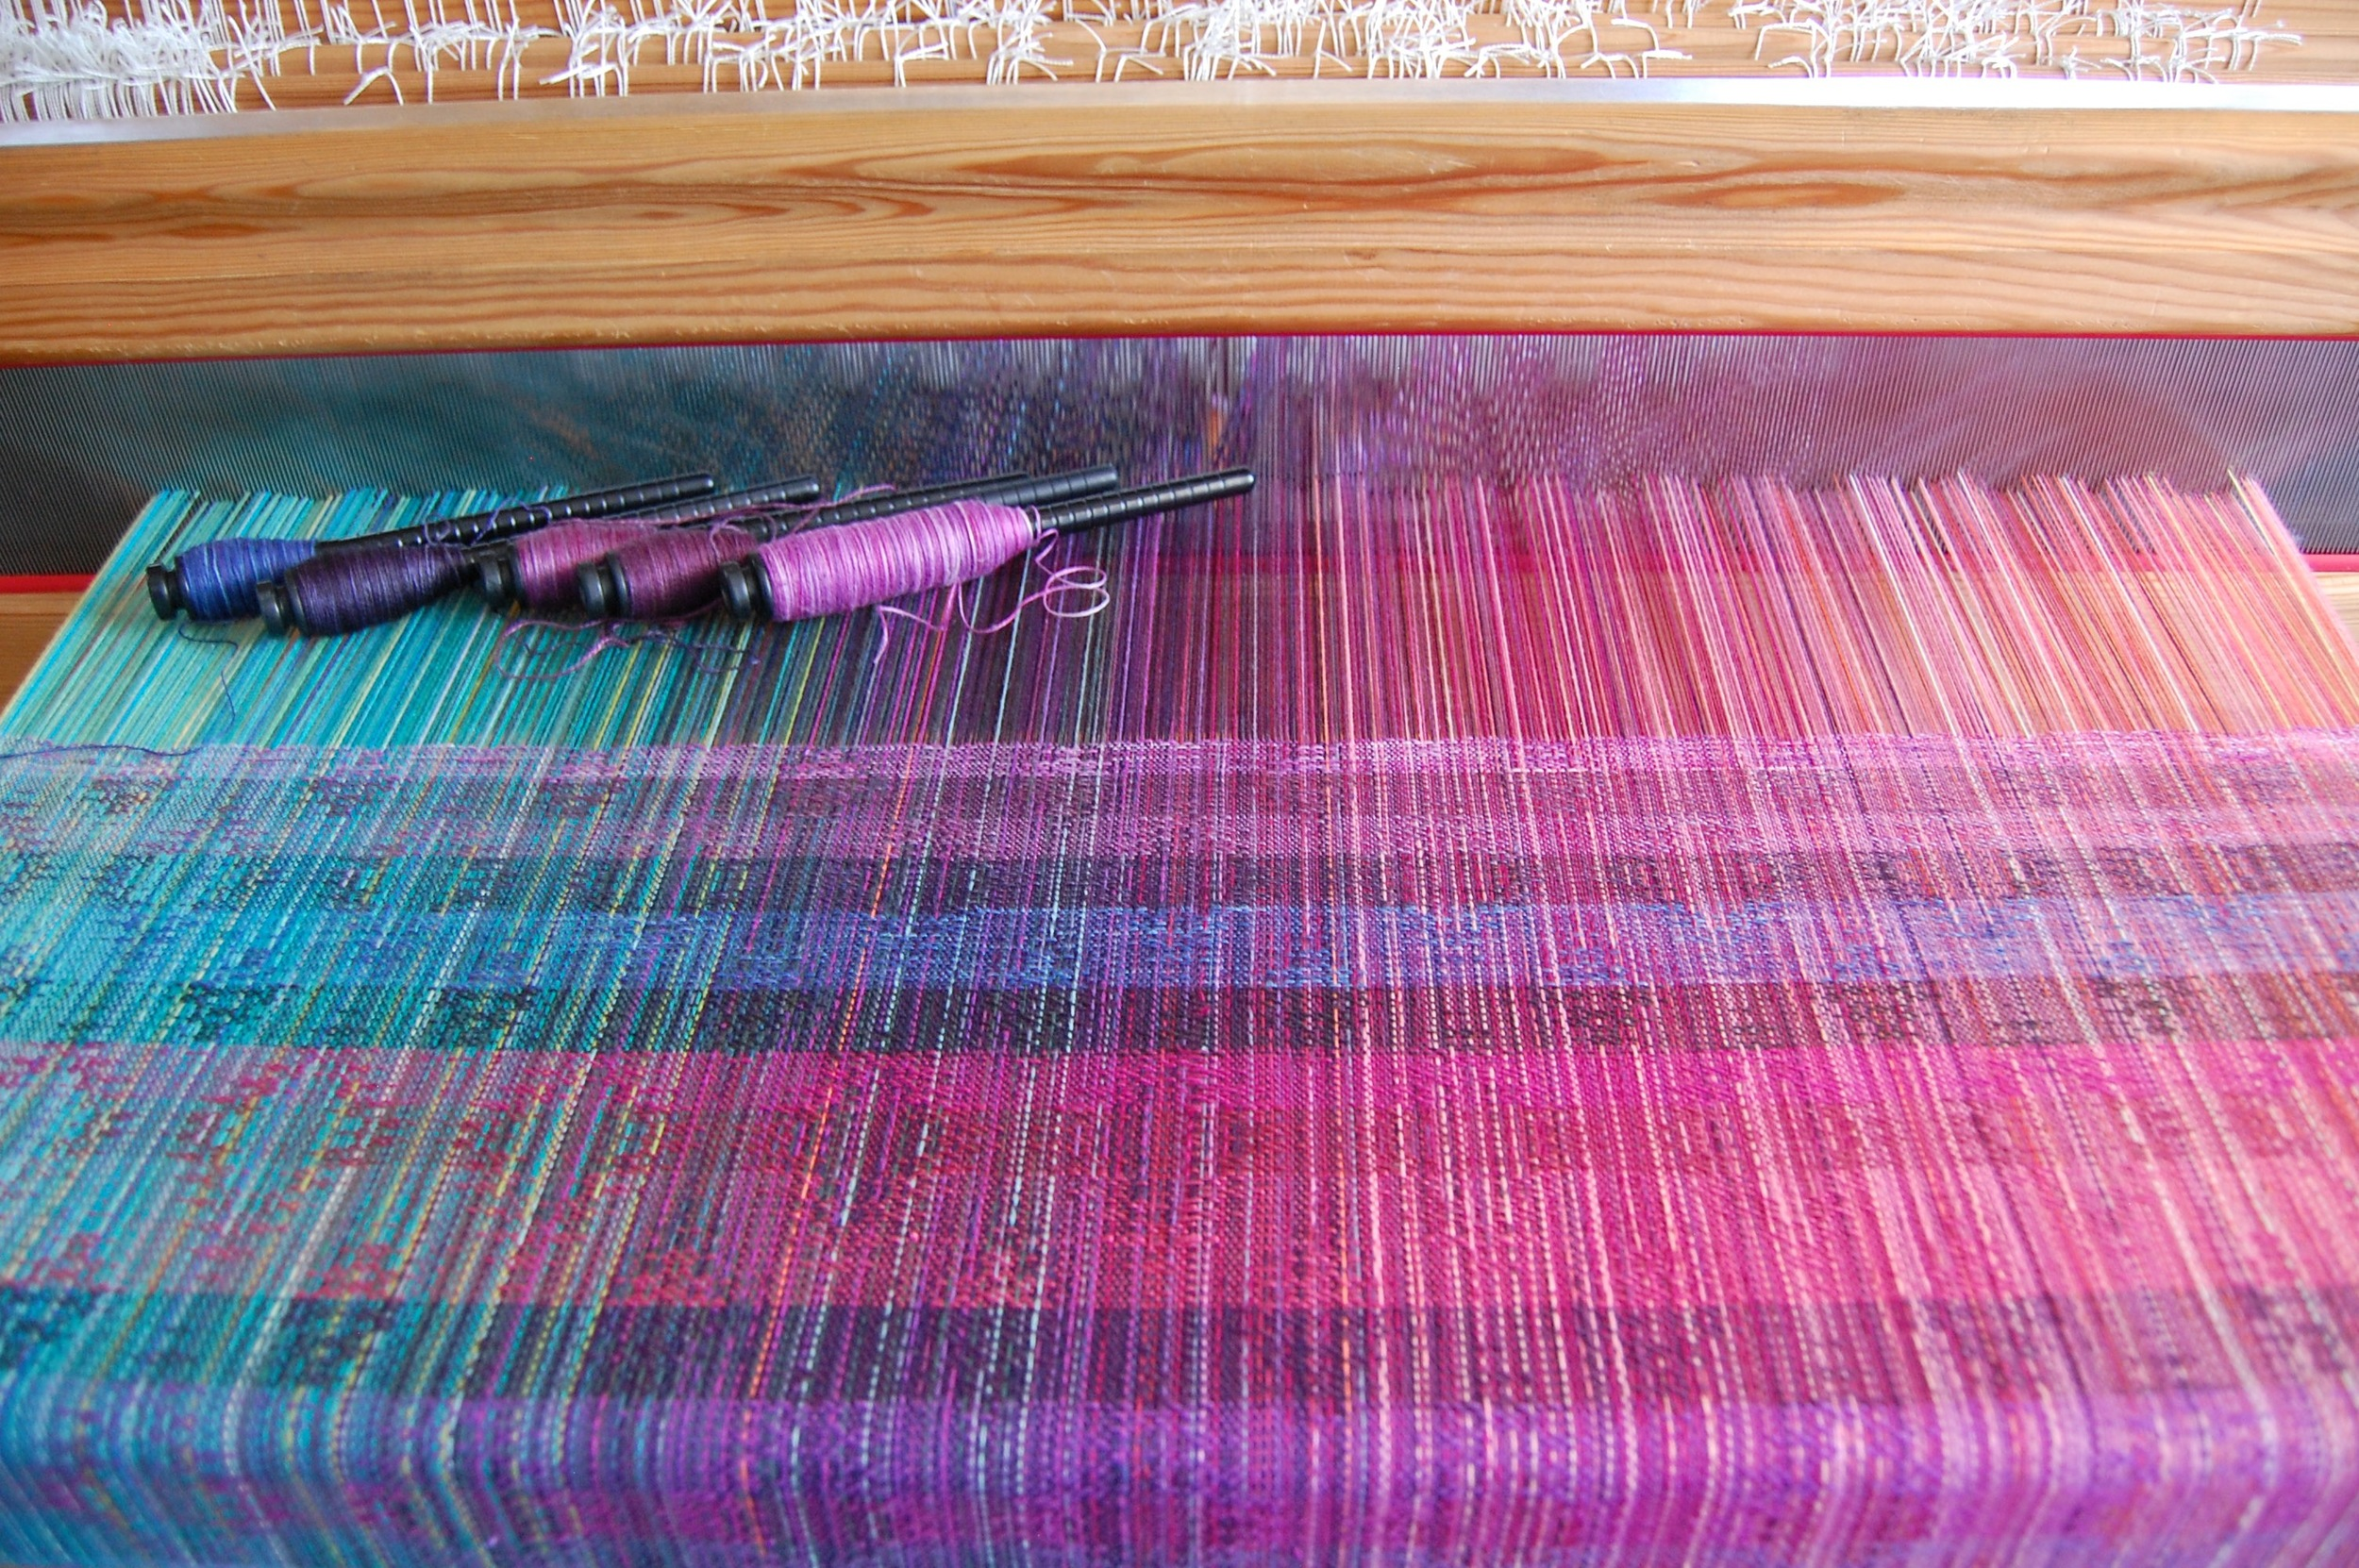 Variegated weft yarns (top five stripes). The bottom stripe corresponds with the left-most pern: 40% hemp/60% cotton in blues and purples, madeline tosh superwash lace merino in Clematis, 70% silk/30% sea cell in Amethyst, Phydeaux 80% superfine merino wool/20% silk in Pomegranate, 40% hemp/60% cotton in pinks and purples.